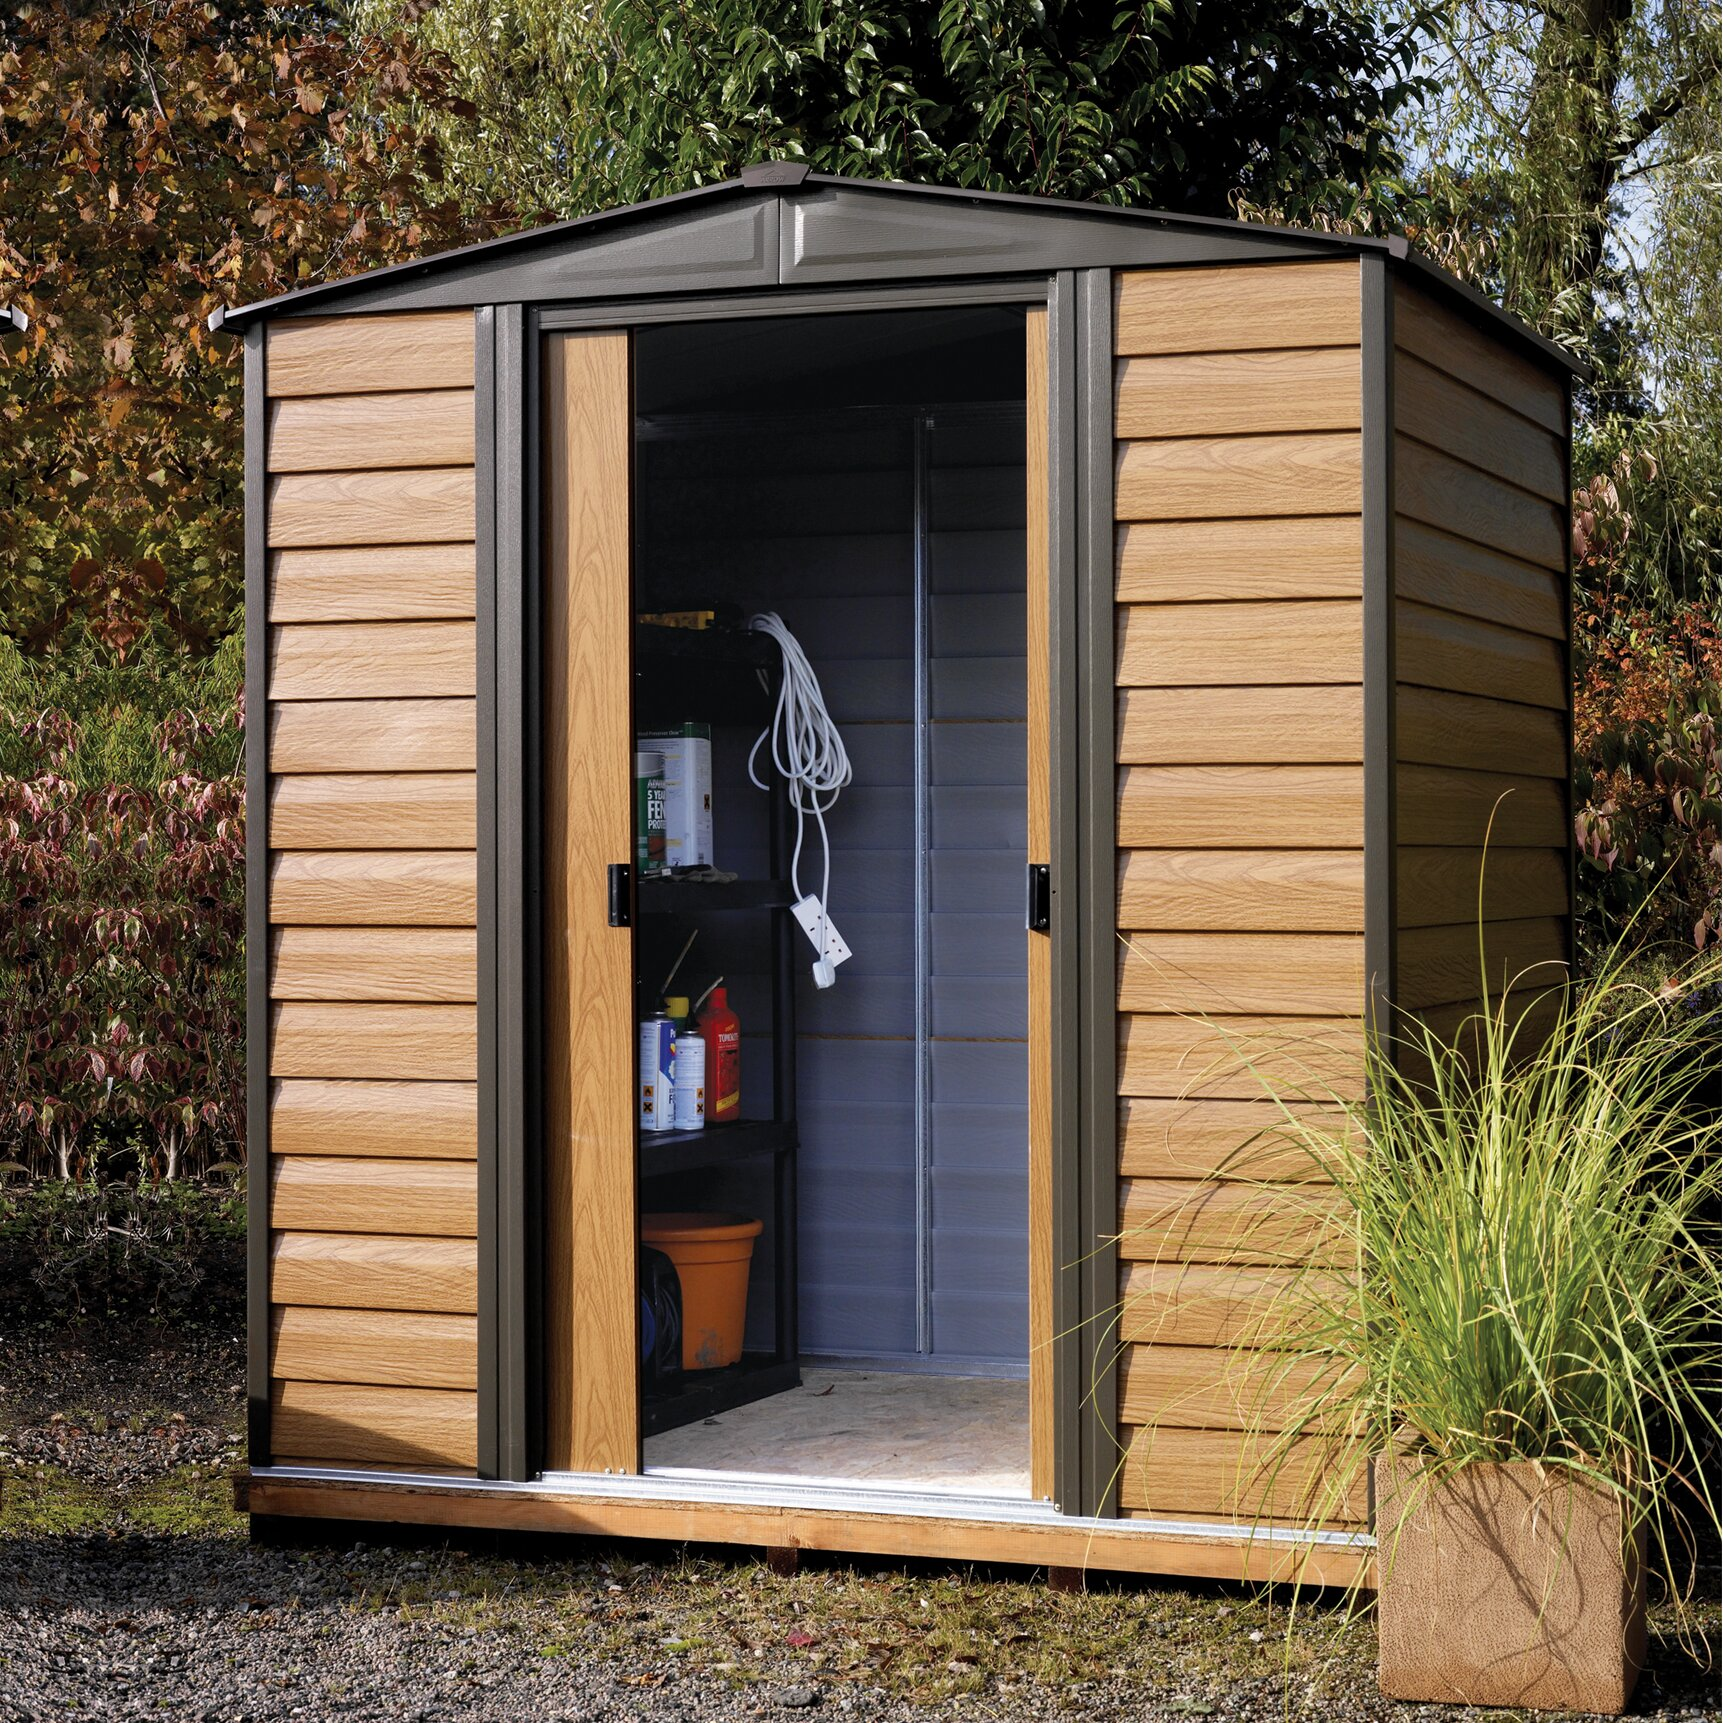 Rowlinson 10 x 12 metal storage shed reviews wayfair uk for Used metal garden sheds for sale